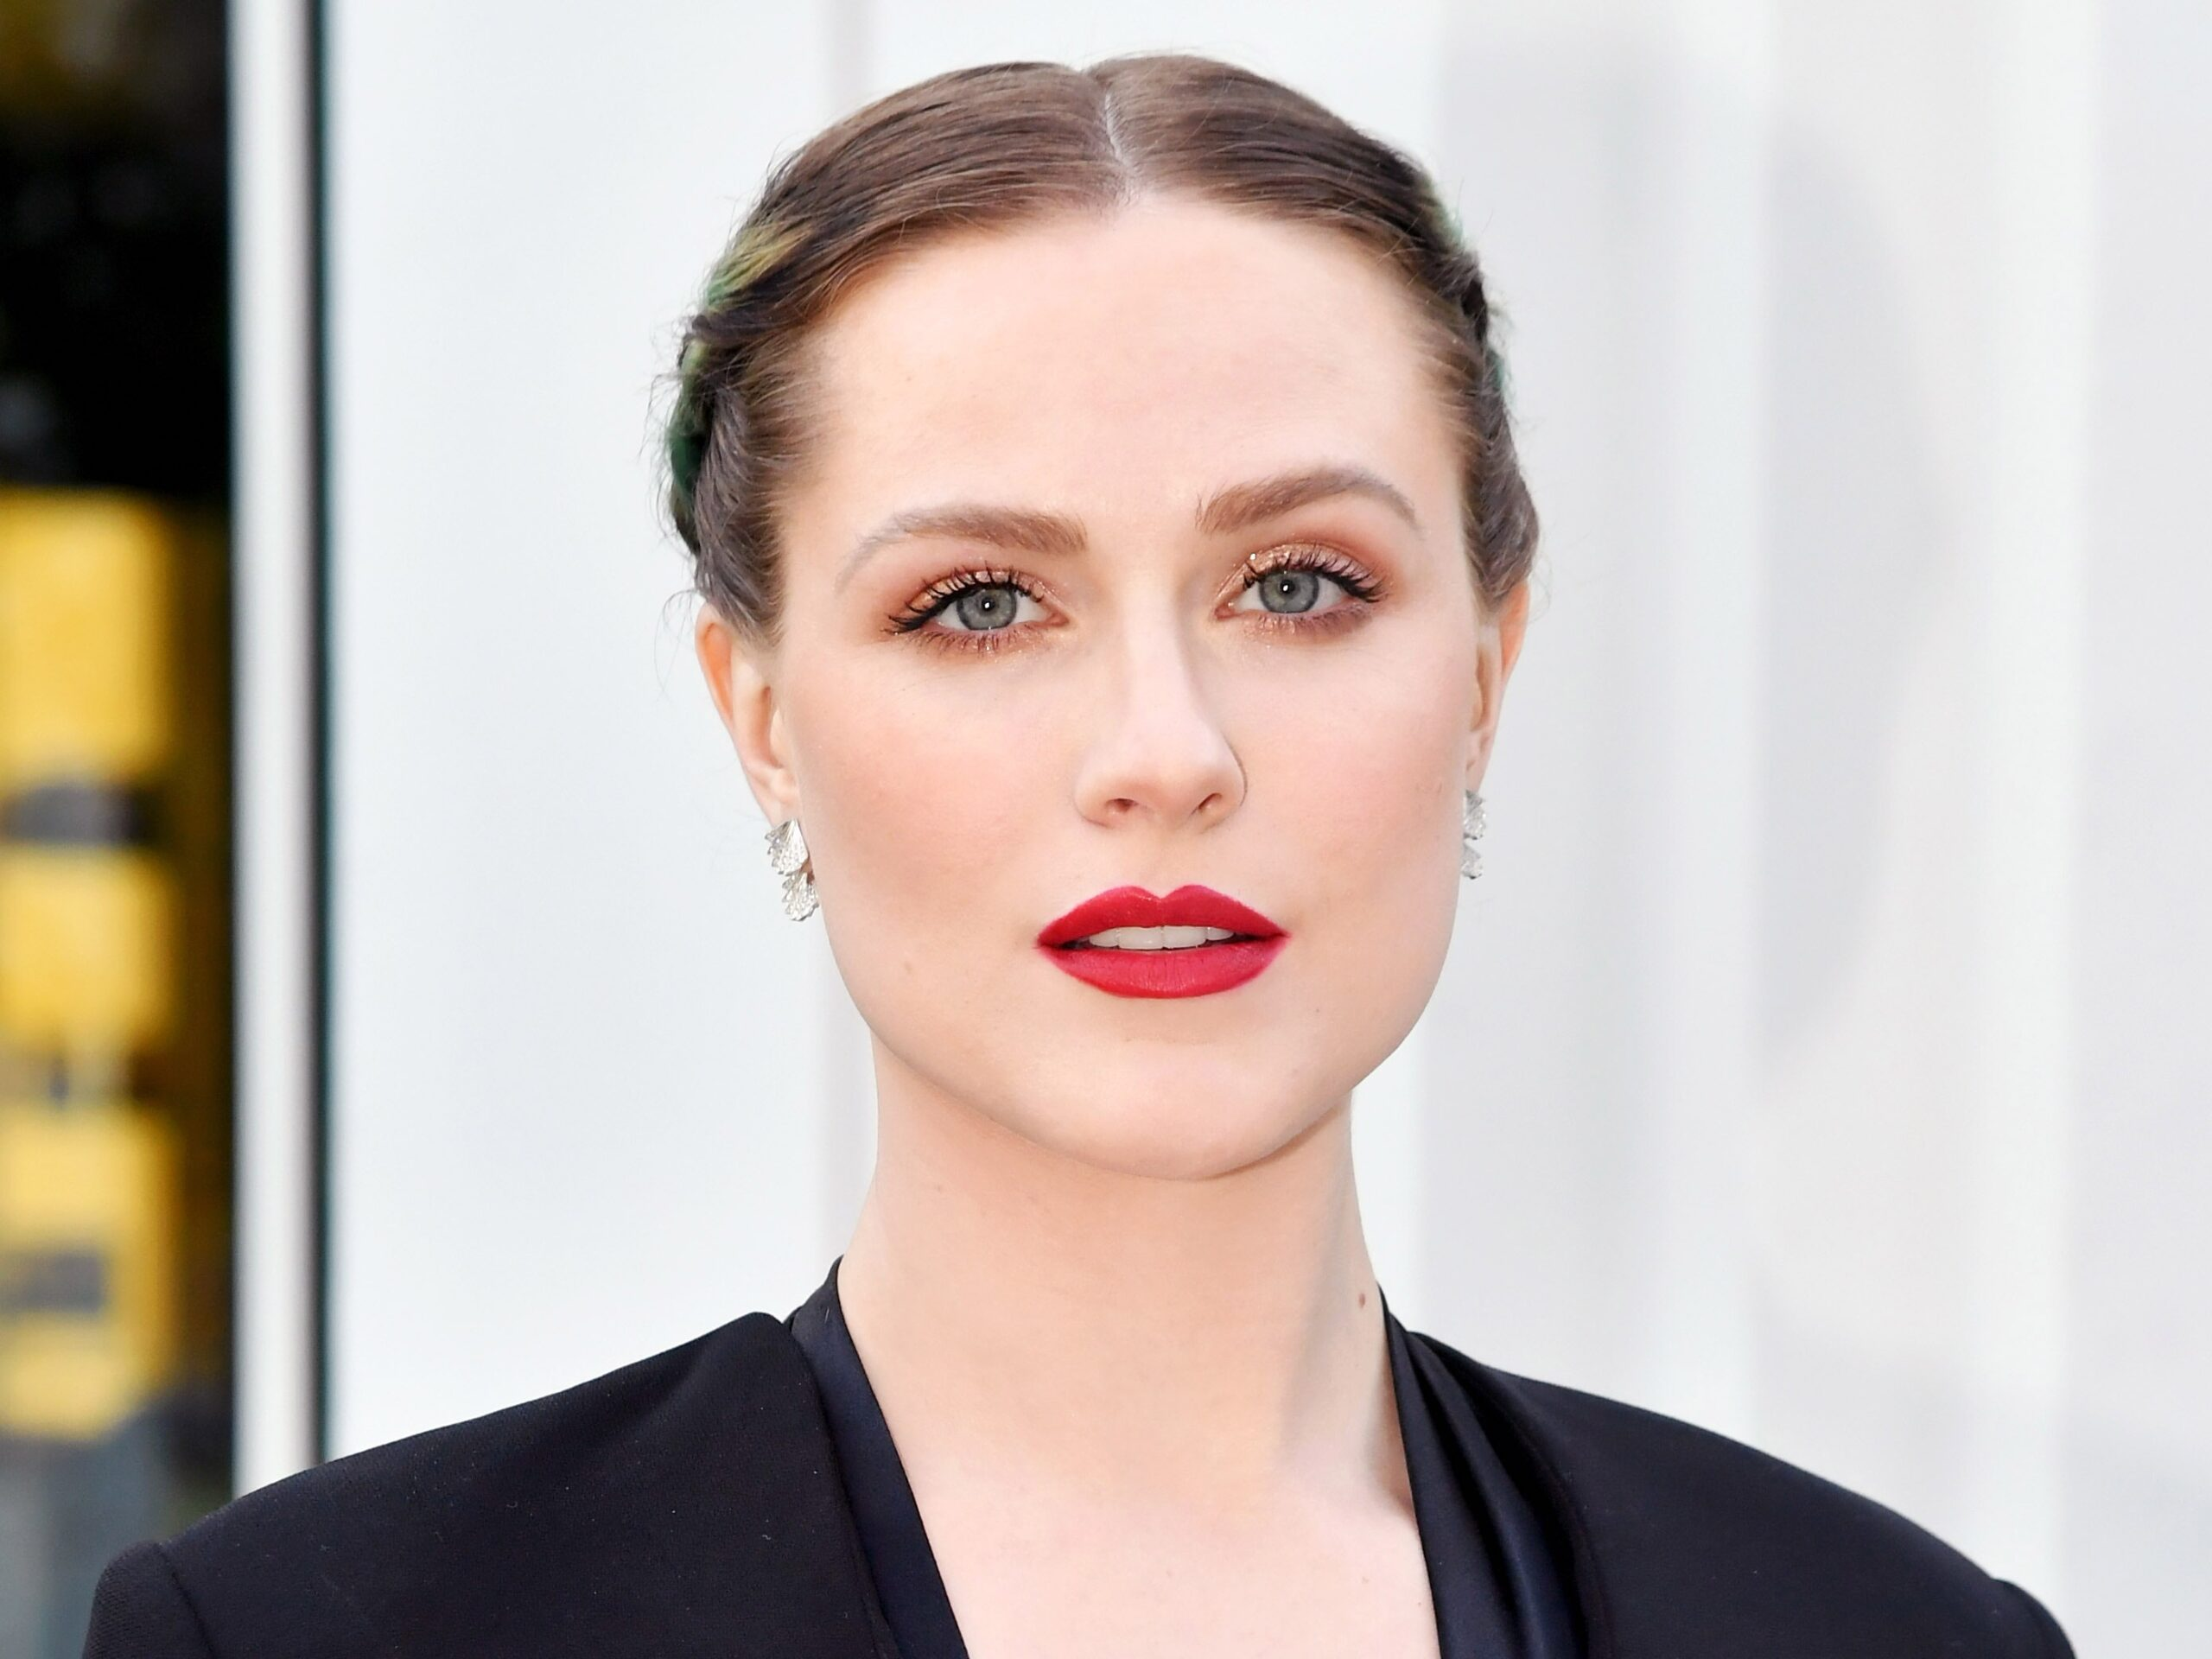 Evan Rachel Wood Phone number, Email Id, Fanmail, Instagram, Tiktok, and Contact Details